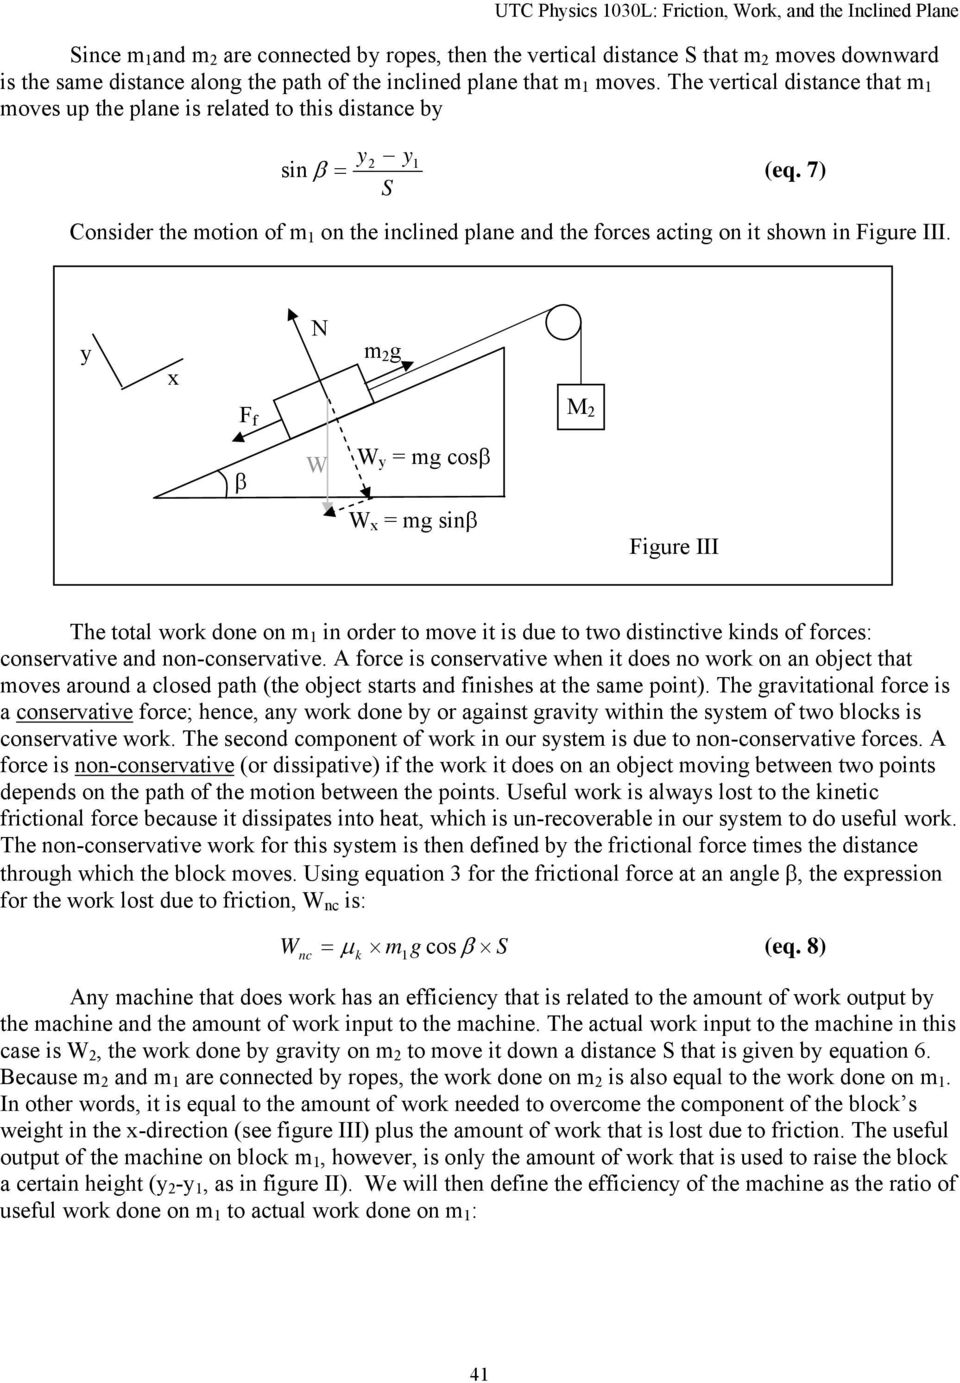 y x N m 2 g F f M 2 β W W y = mg cosβ W x = mg sinβ Figure III The total wor done on m in order to move it is due to two distinctive inds of forces: conservative and non-conservative.